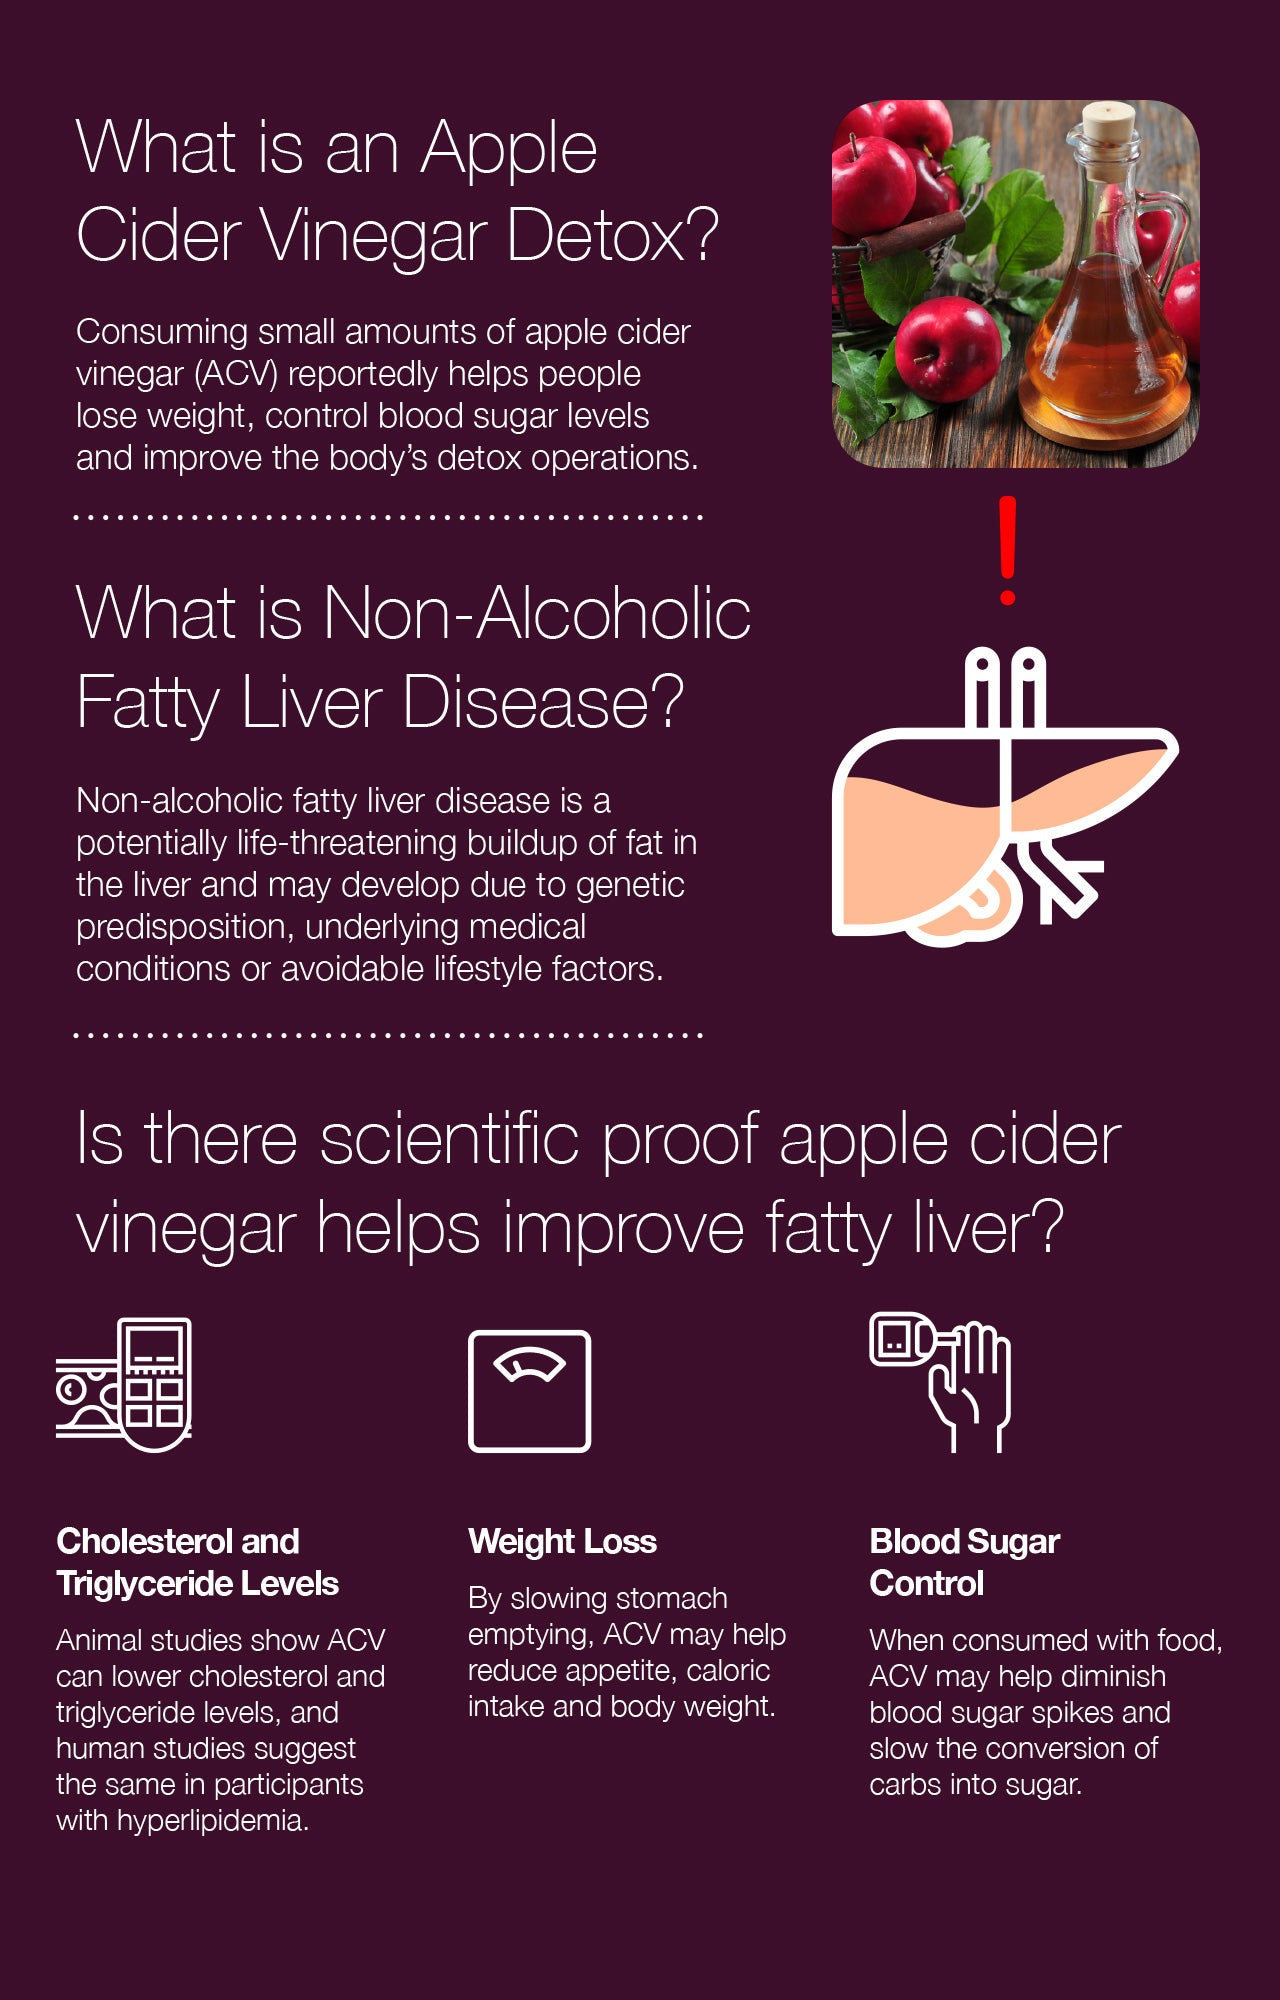 What is an Apple Cider Vinegar Detox?